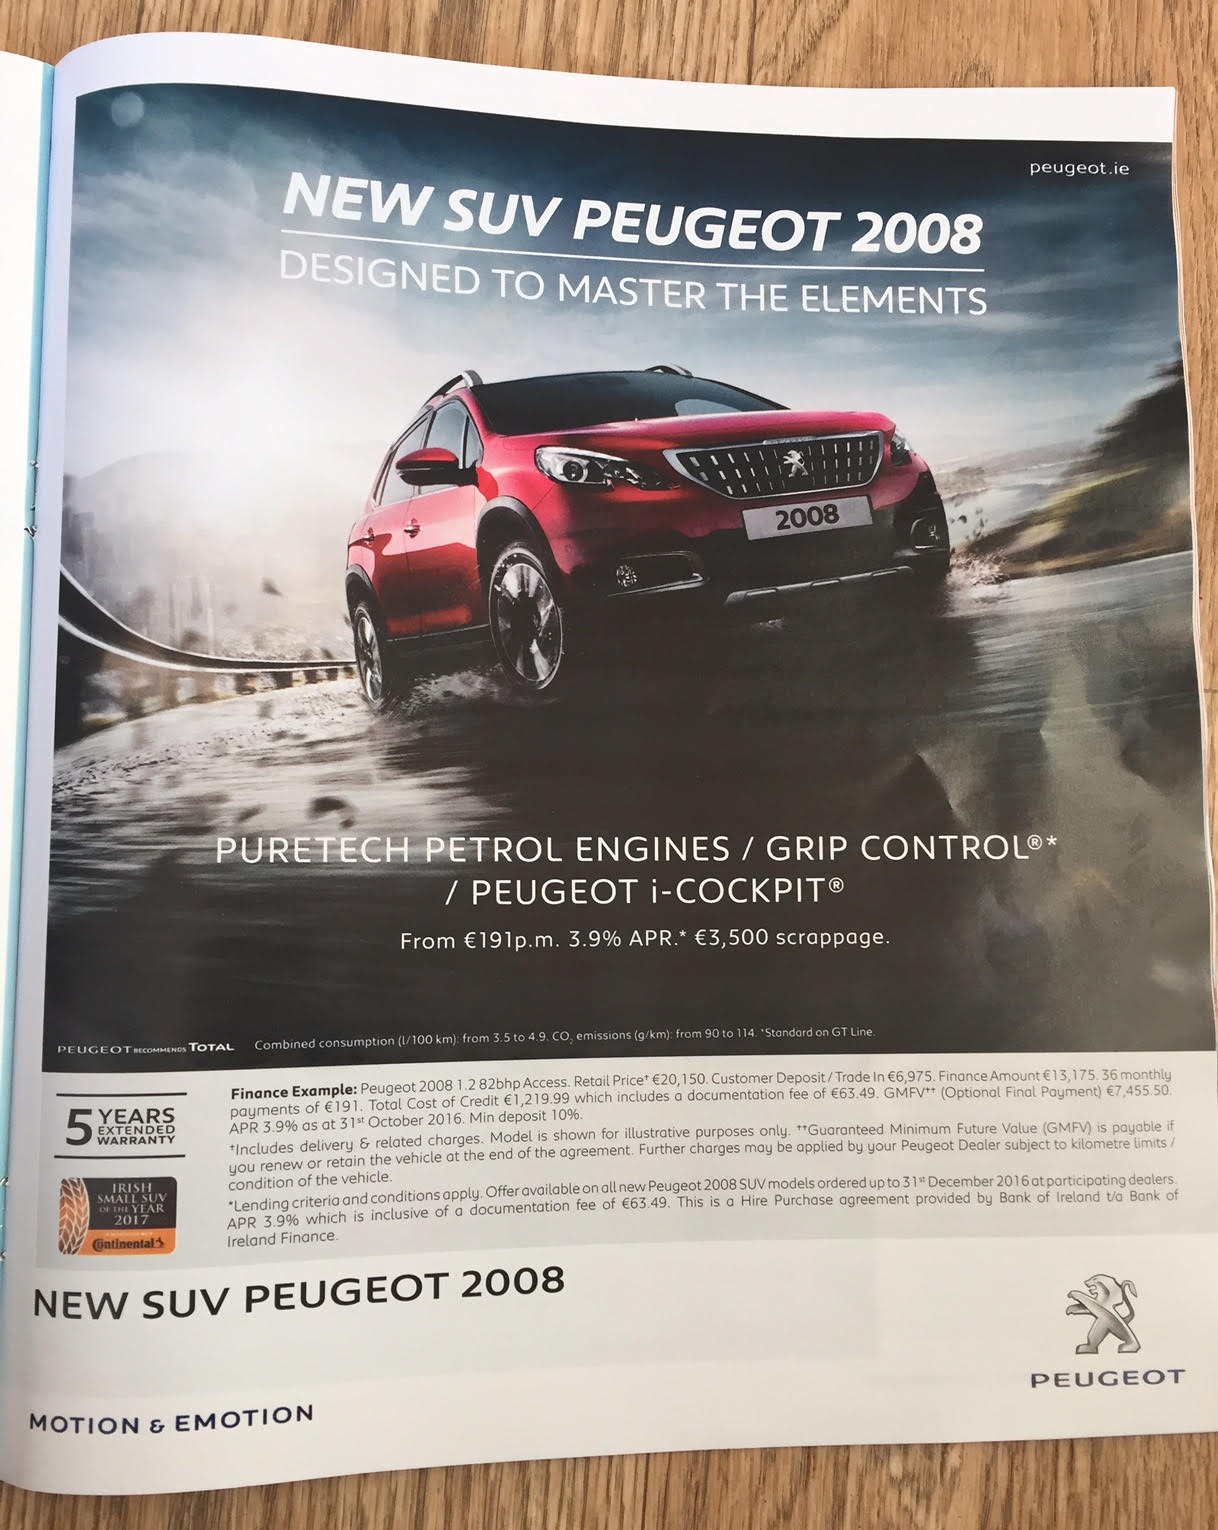 New SUV Peugeot 2008 – Designed to master the elements